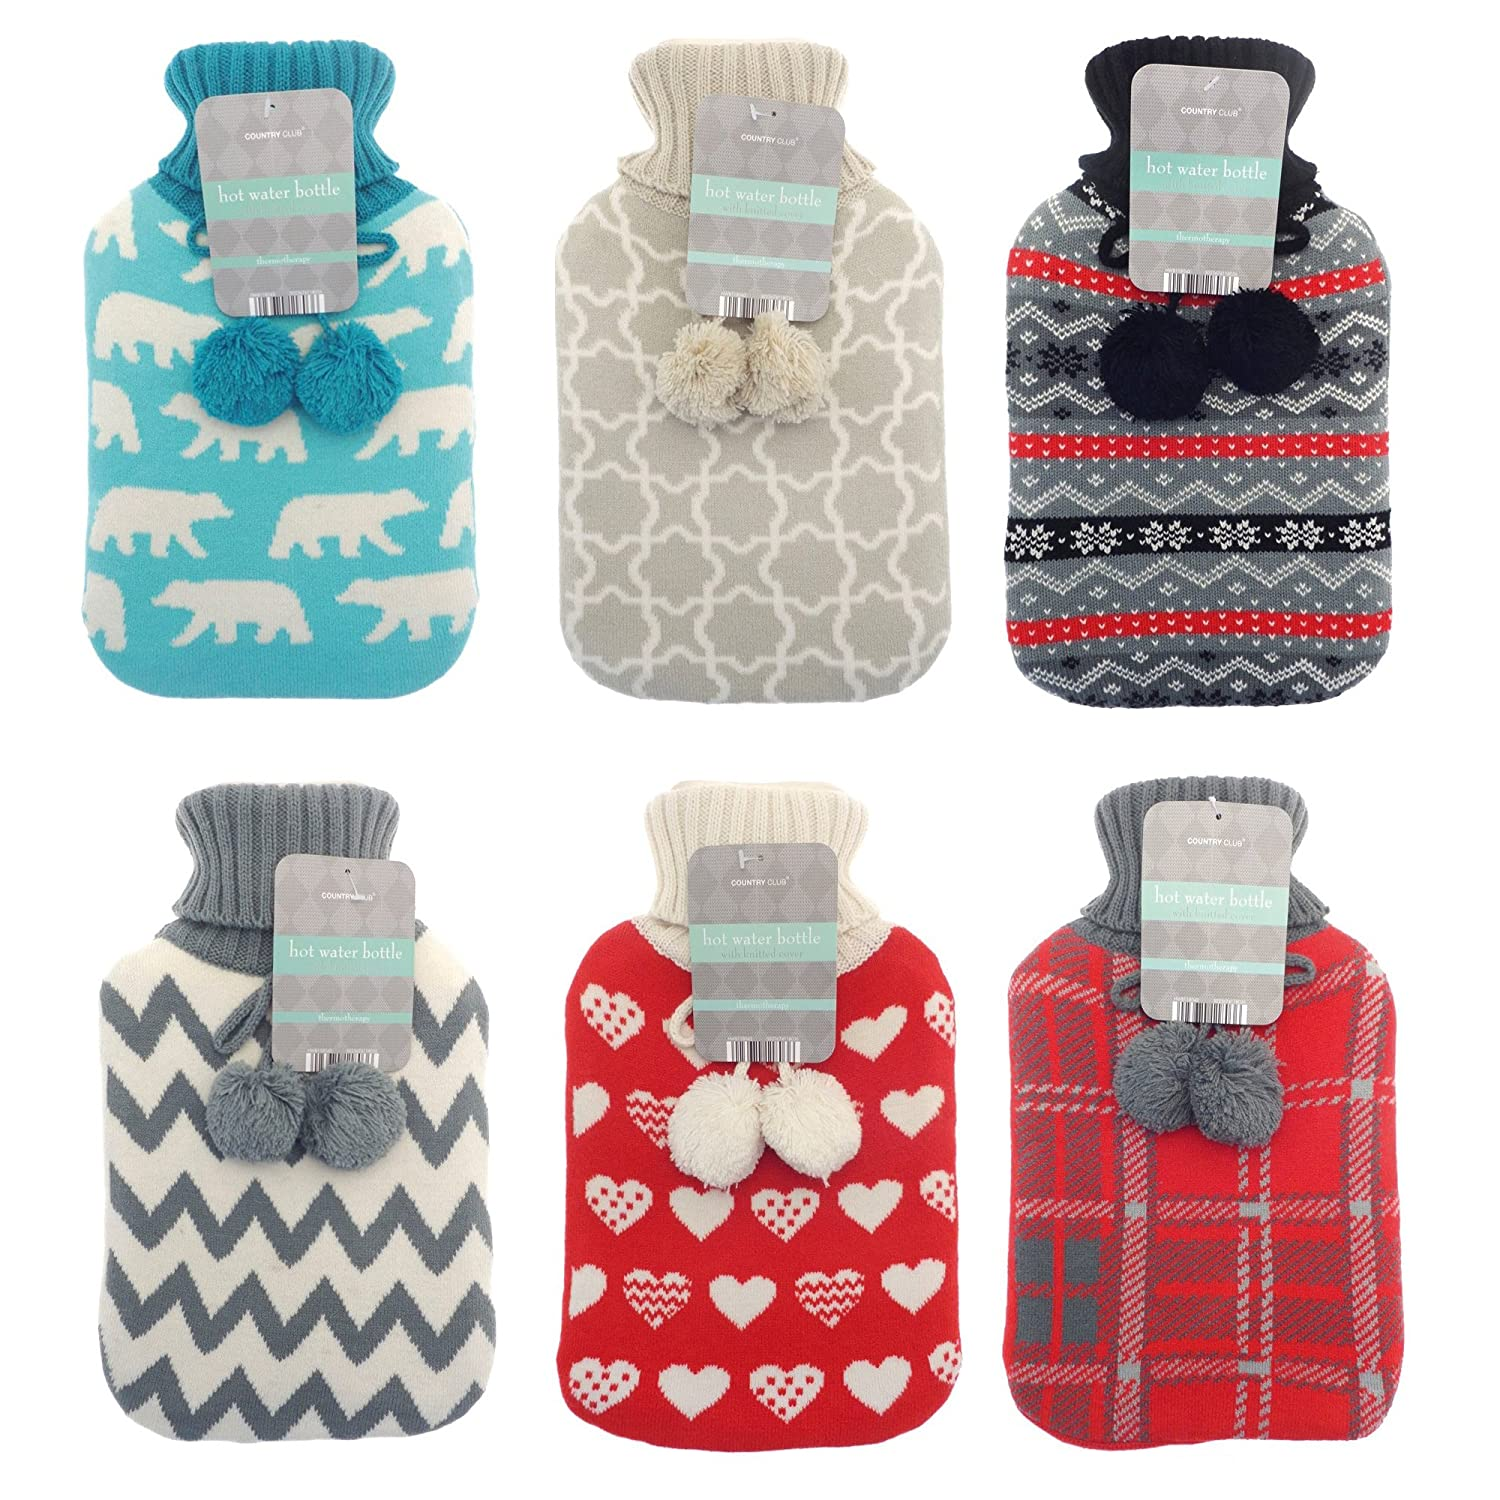 Hot water bottle with nordic design knitted cover amazon hot water bottle with nordic design knitted cover amazon kitchen home bankloansurffo Choice Image